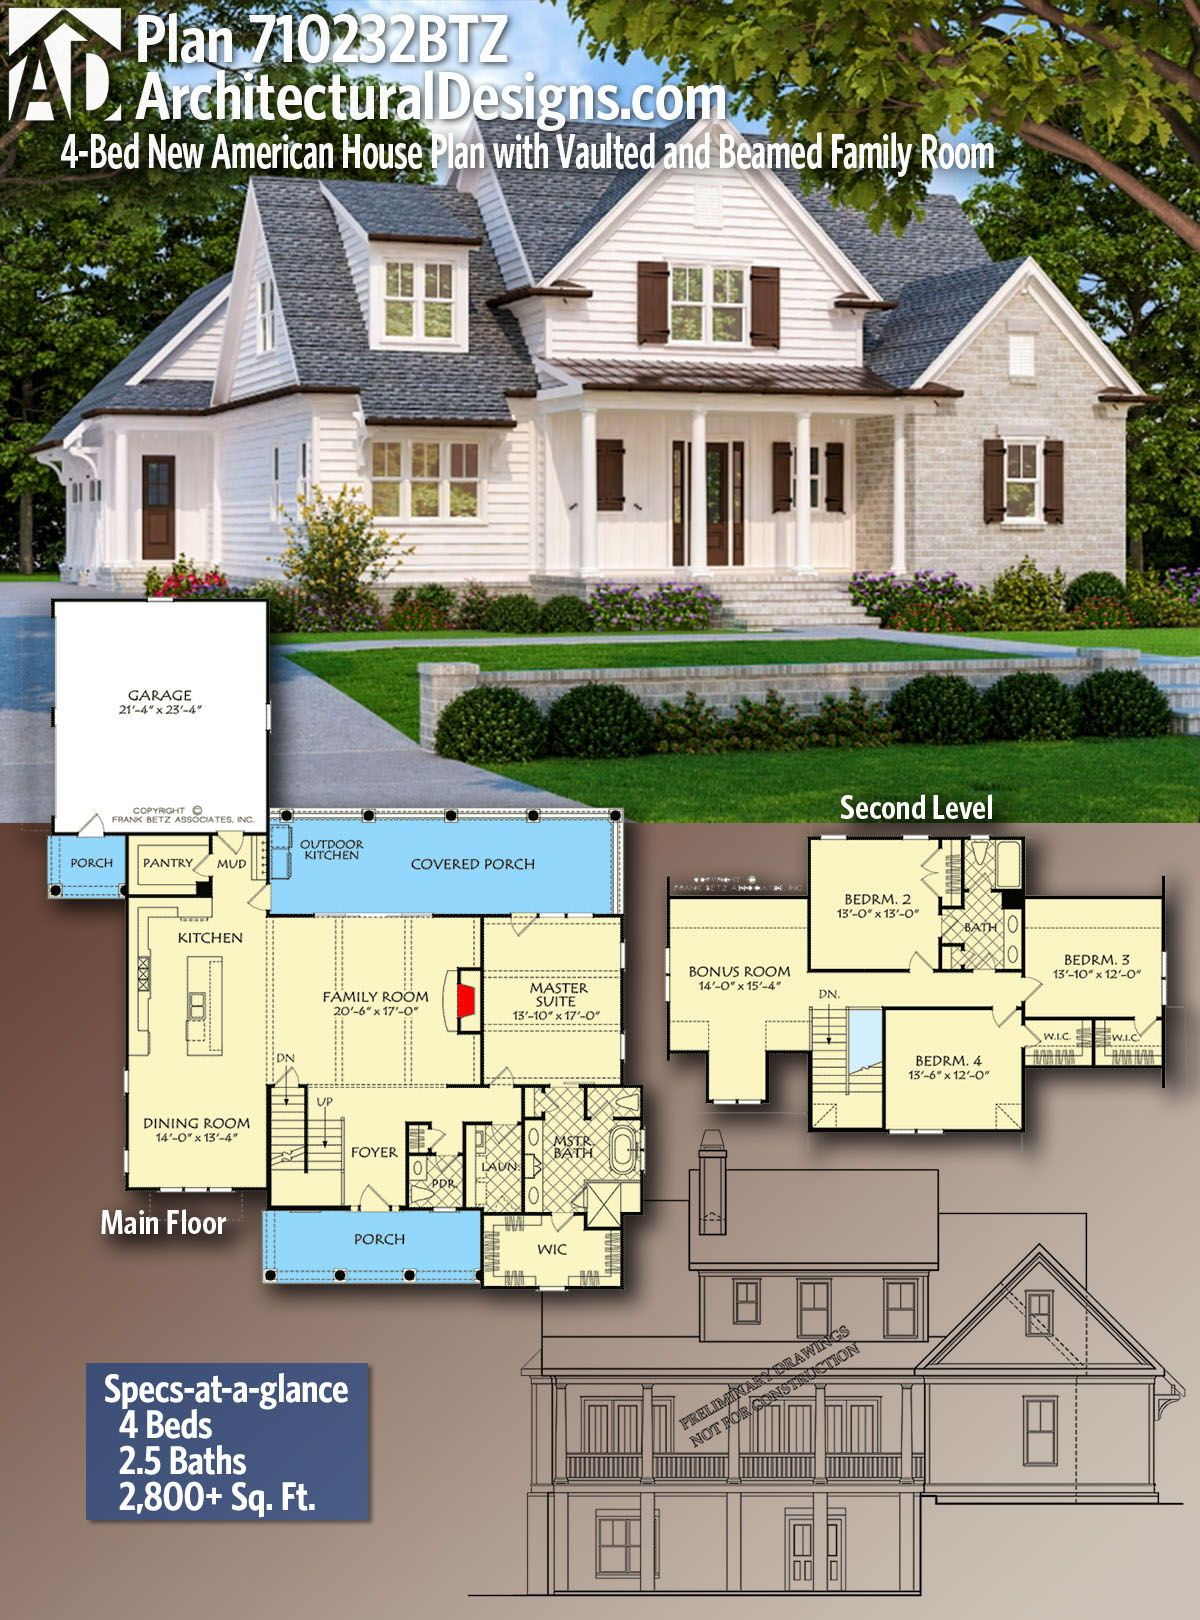 Plan 710232btz 4 Bed New American House Plan With Beamed Family Room And Master Suite In 2021 American Houses New House Plans House Plans